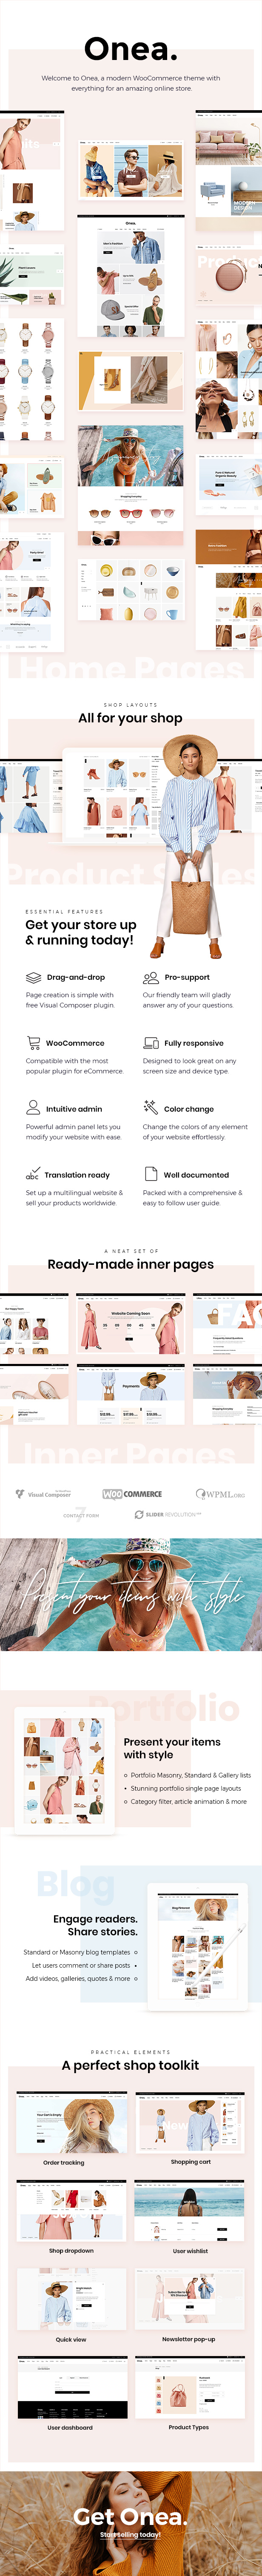 Onea - Multipurpose WooCommerce Theme - 1